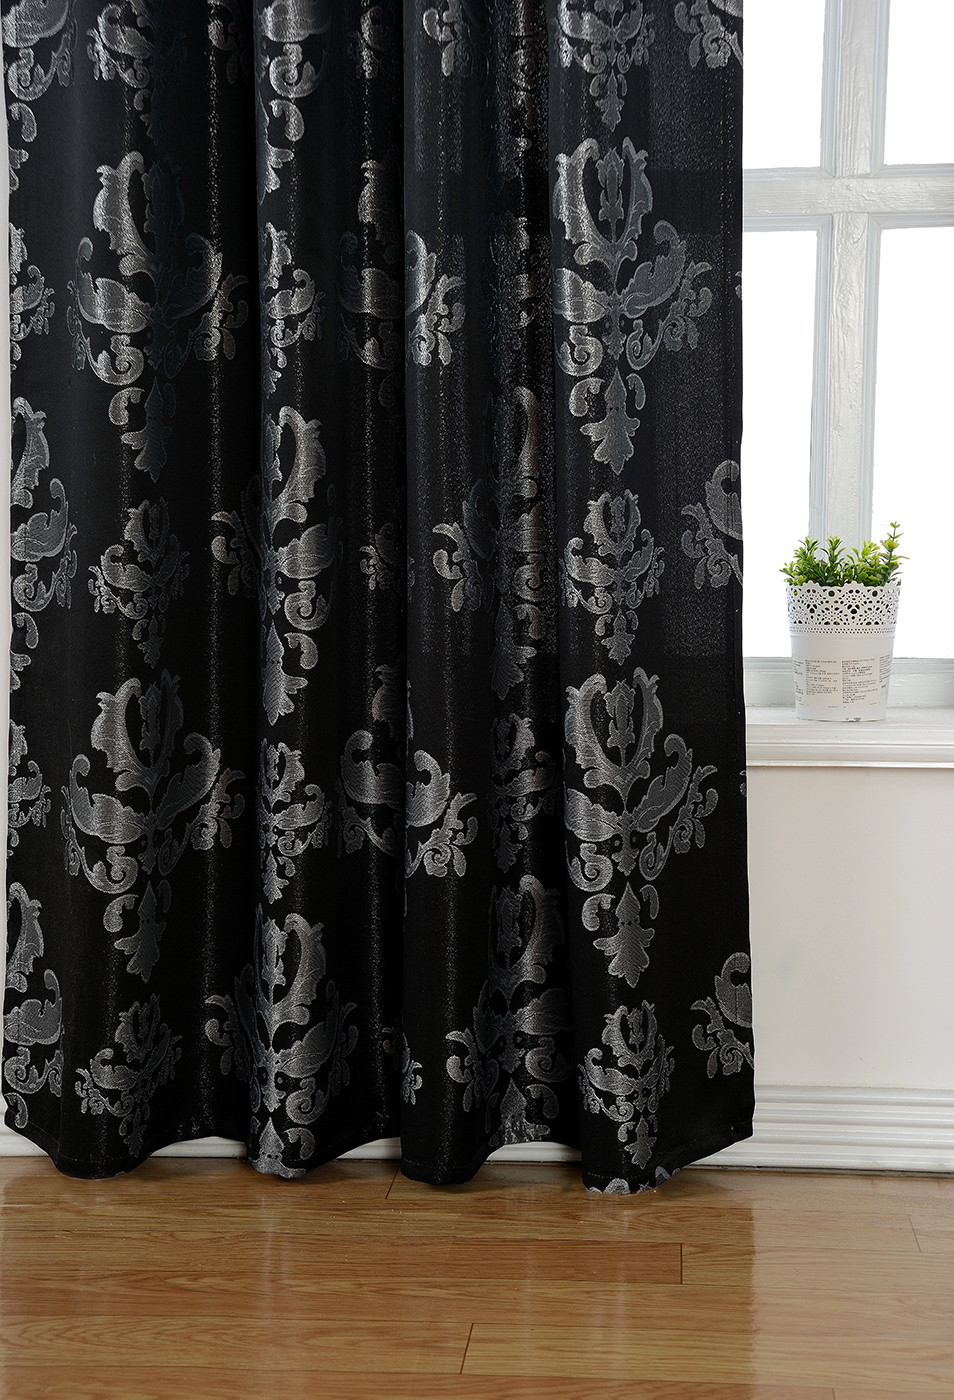 vorhang jacquard gardine verdeckte schlaufen barock lurex schwarz silber 245x140 ebay. Black Bedroom Furniture Sets. Home Design Ideas